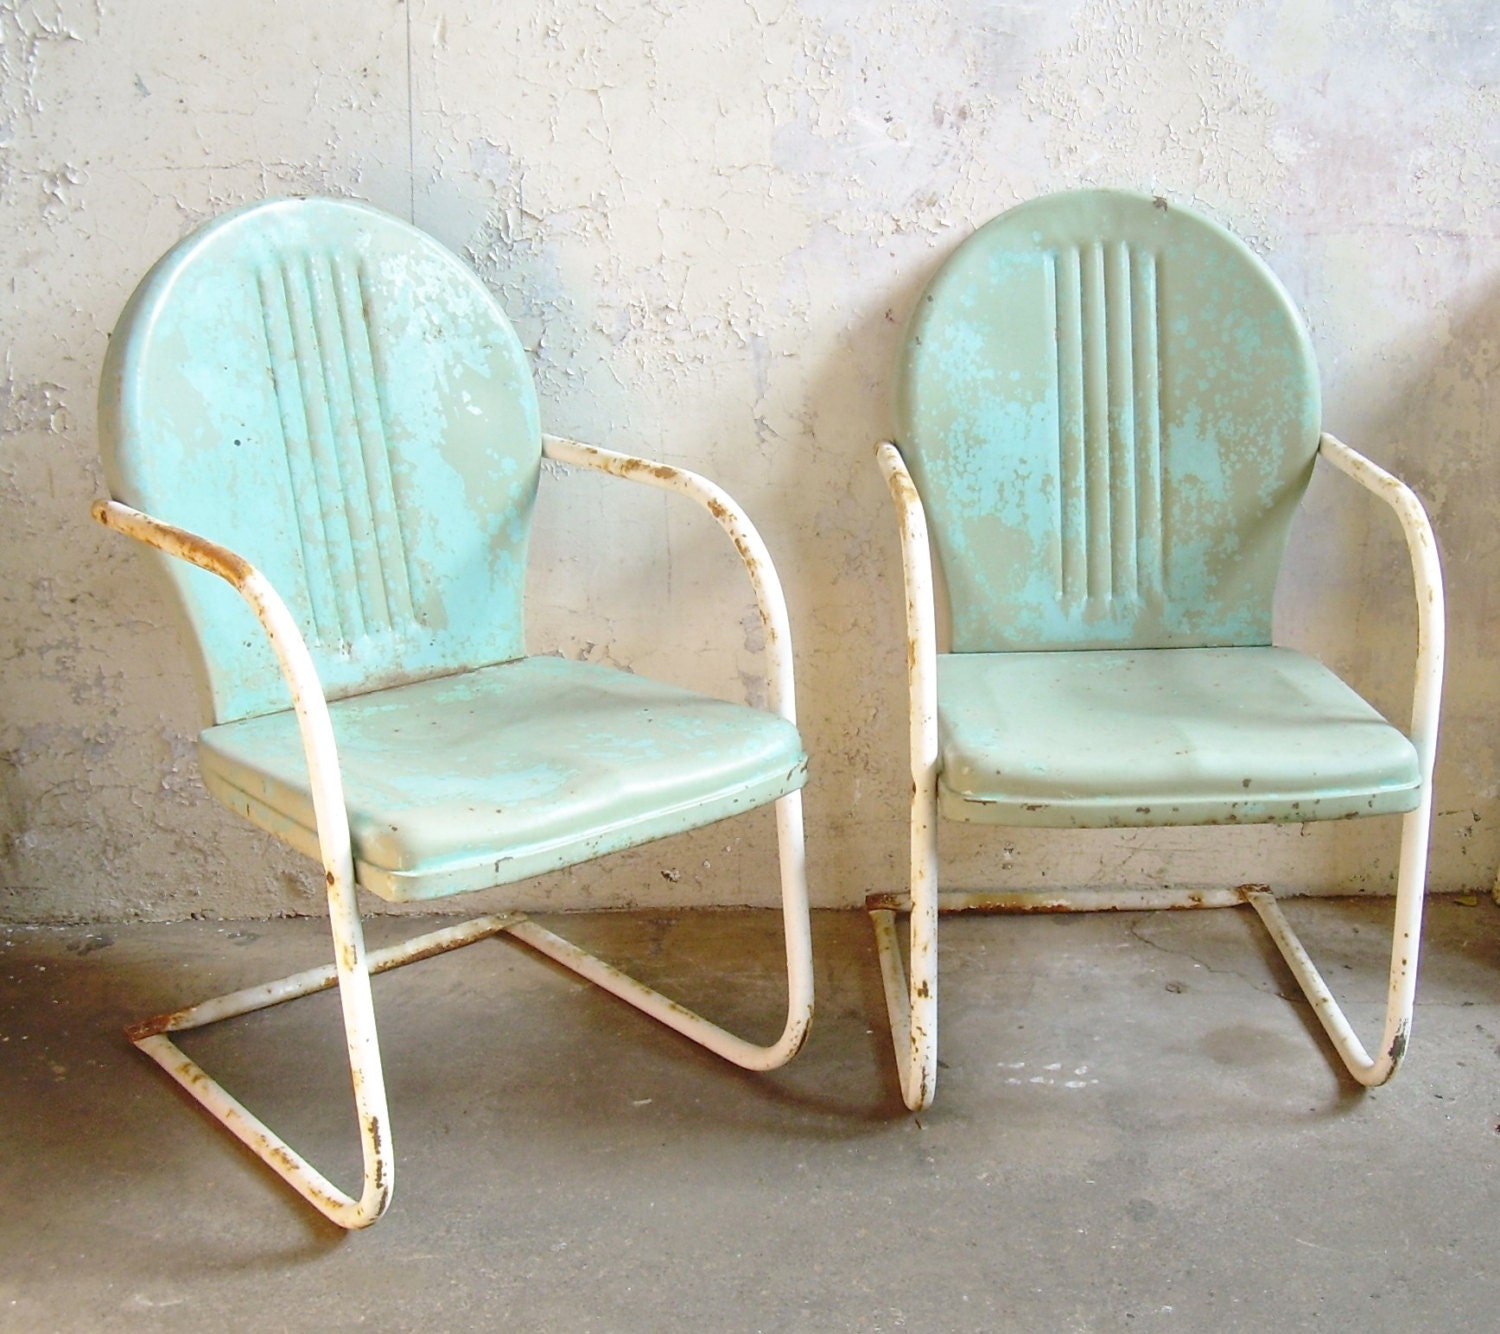 Retro metal lawn chairs pair rustic vintage porch furniture for Porch furniture